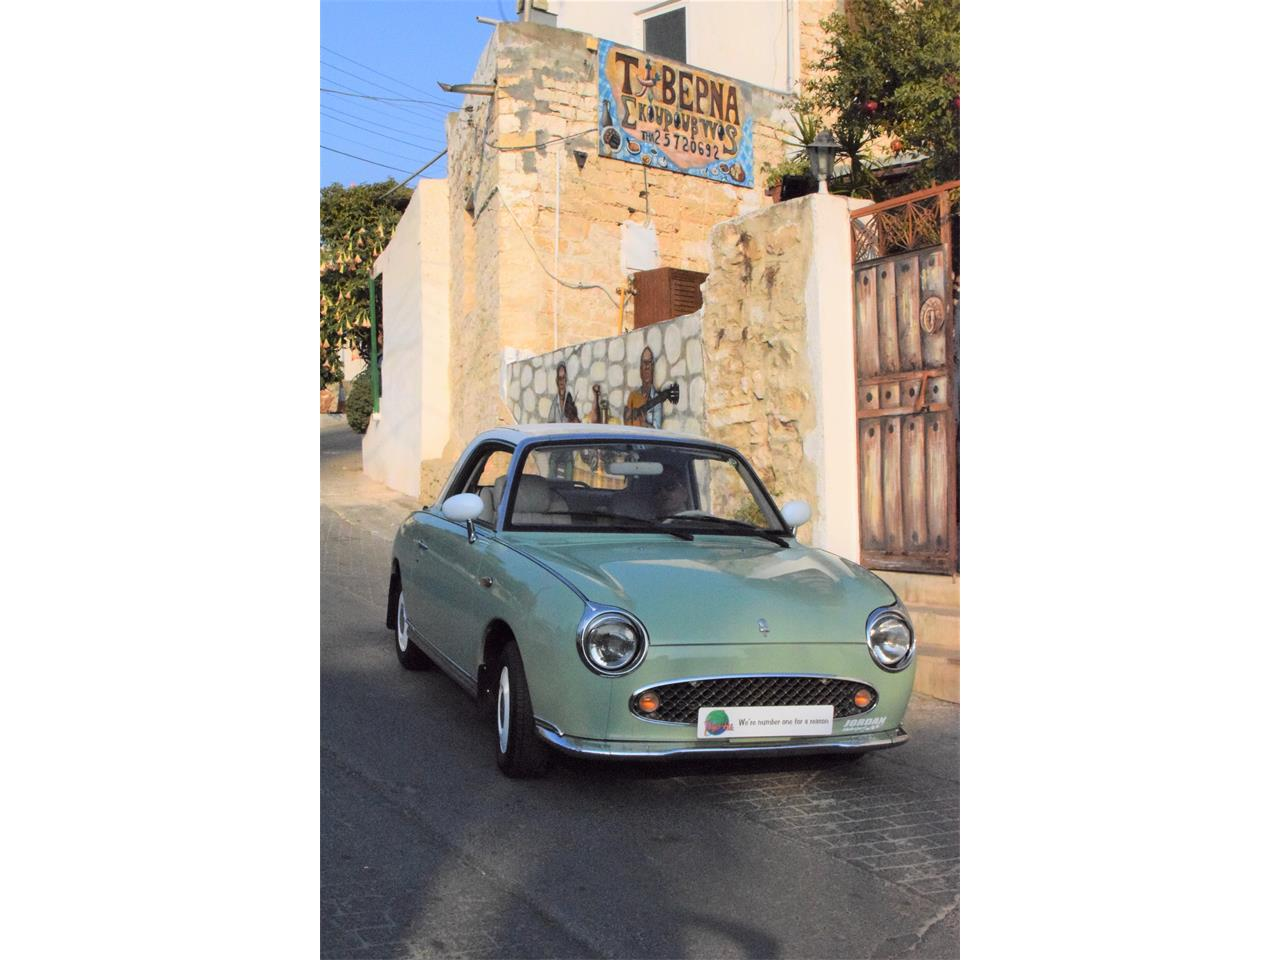 Large Picture of 1991 Nissan Figaro located in Limassol - $29,995.00 - M6O9